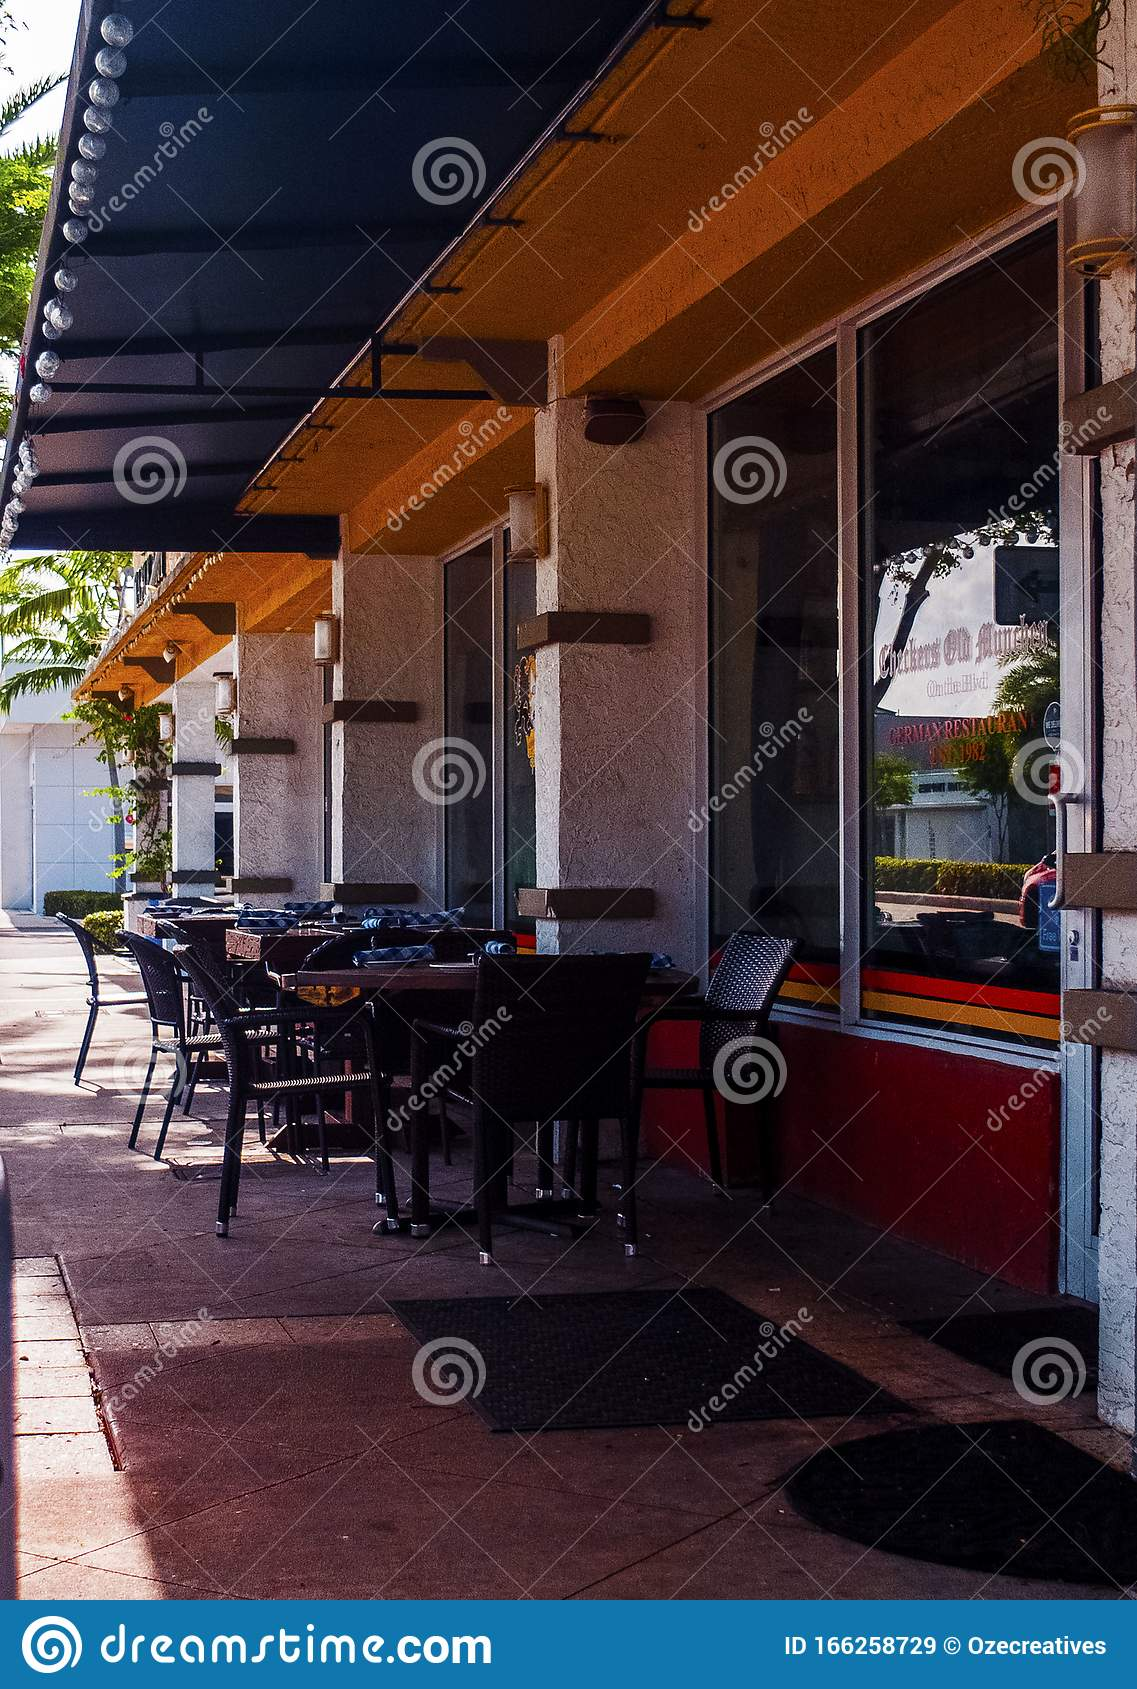 Street Cafe Outside Seating And Entrace To Restaurant Stock Image Image Of Furniture Table 166258729